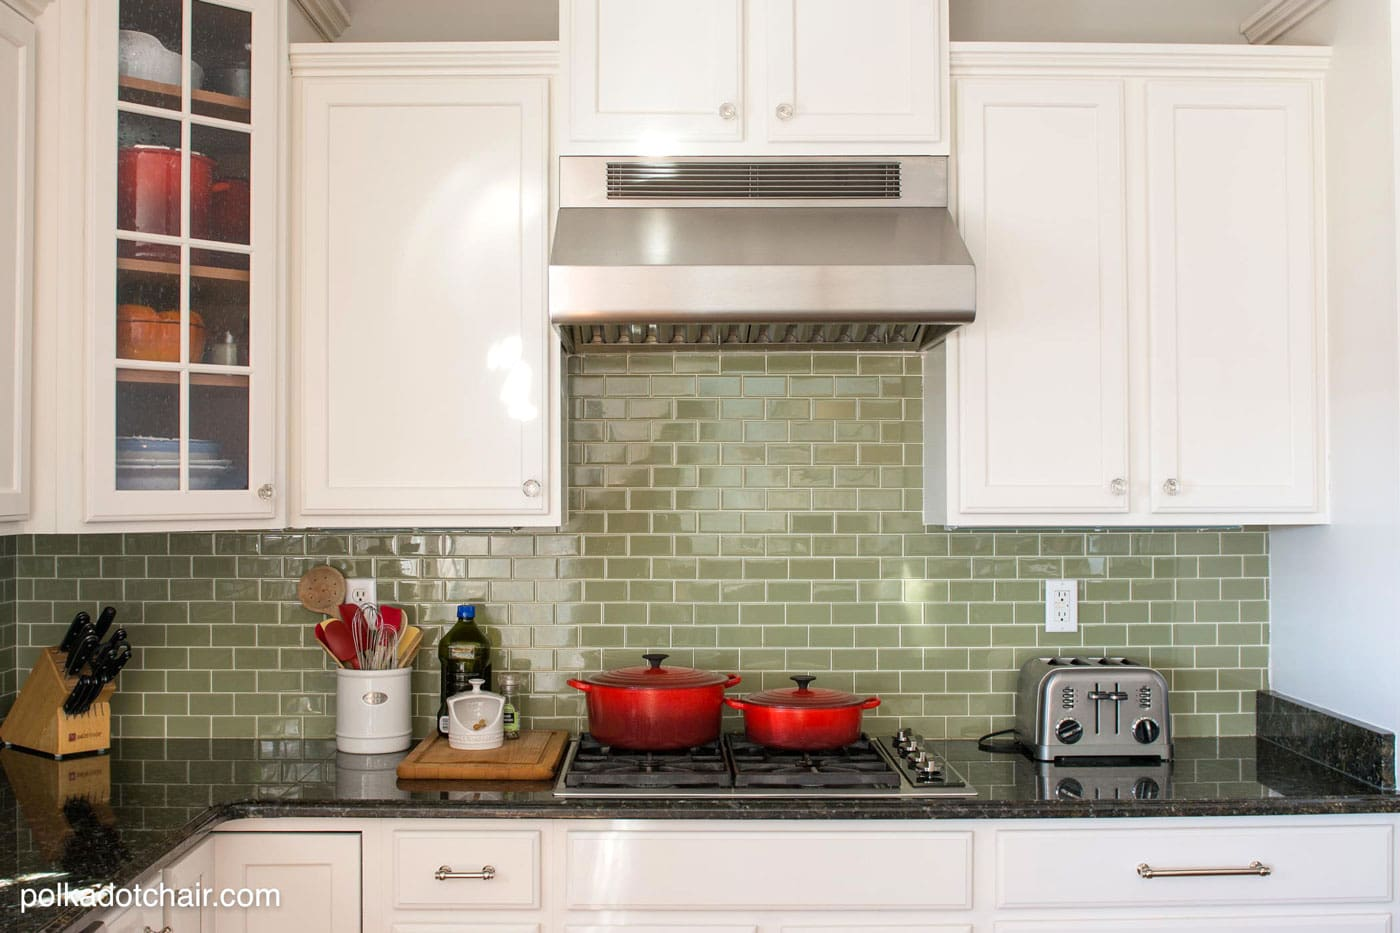 kitchen makeover companies shoes for work in a backsplash before and after reveal century